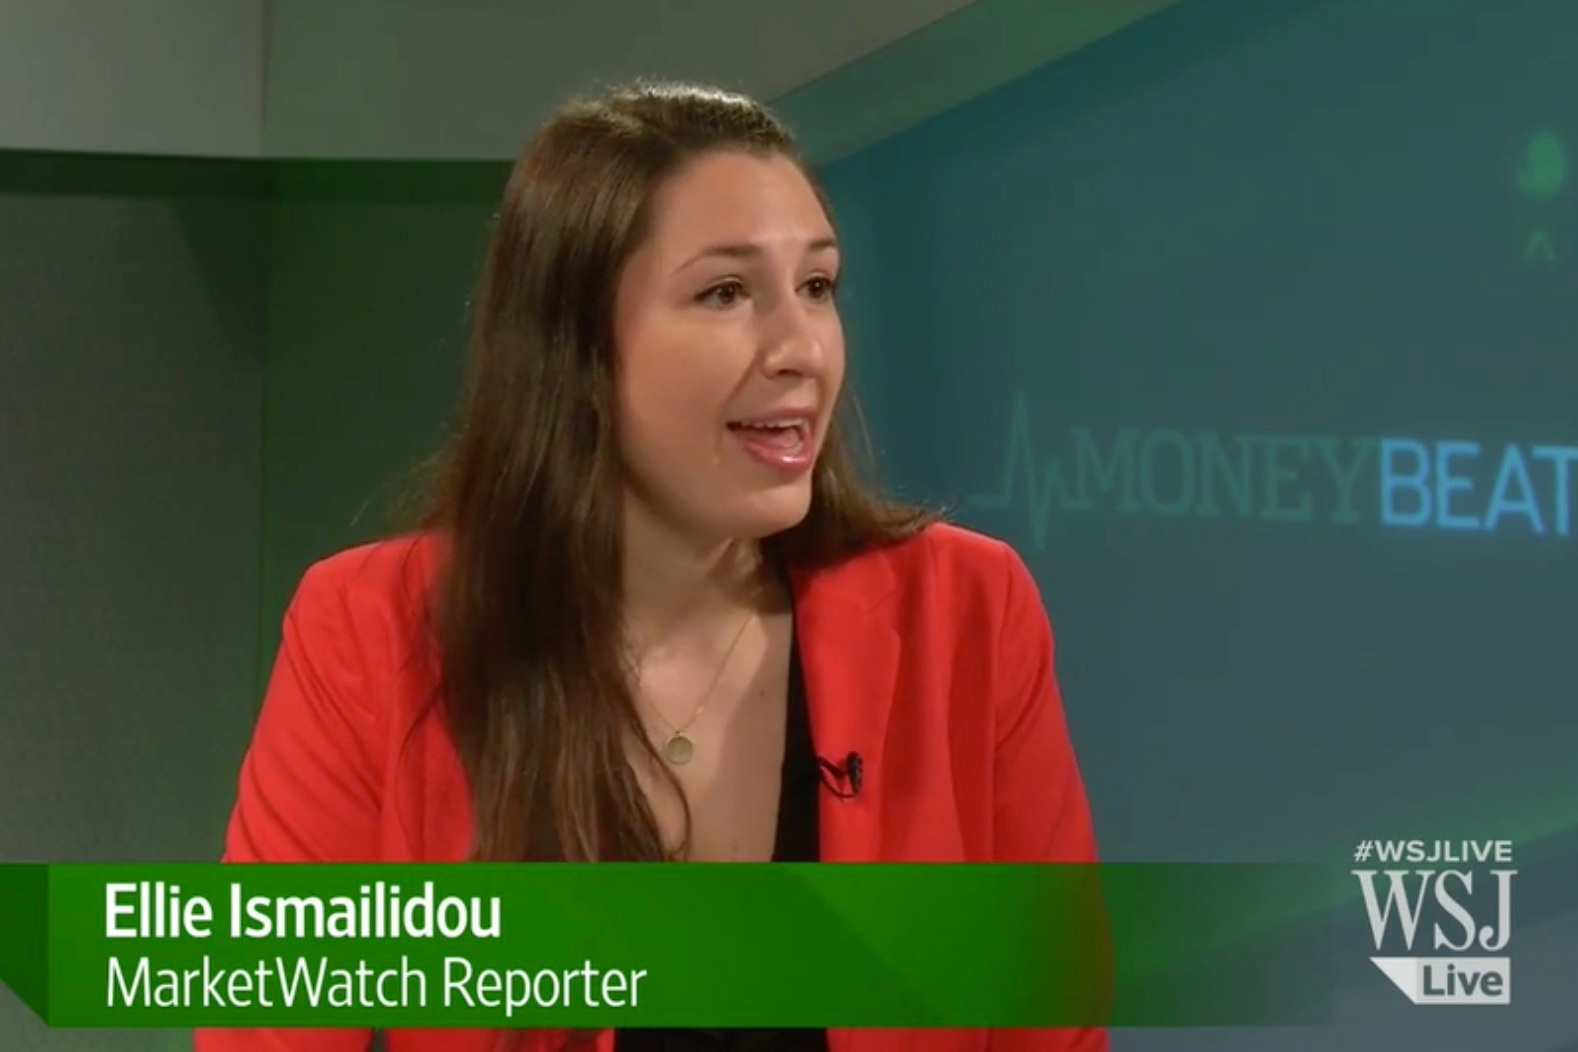 Ellie Ismailidou joins WSJ's MoneyBeat to talk about how jitters over the financial future of Greece roiled global markets, with equities falling sharply and demand surging for assets considered safest during times of stress, like German government bonds.